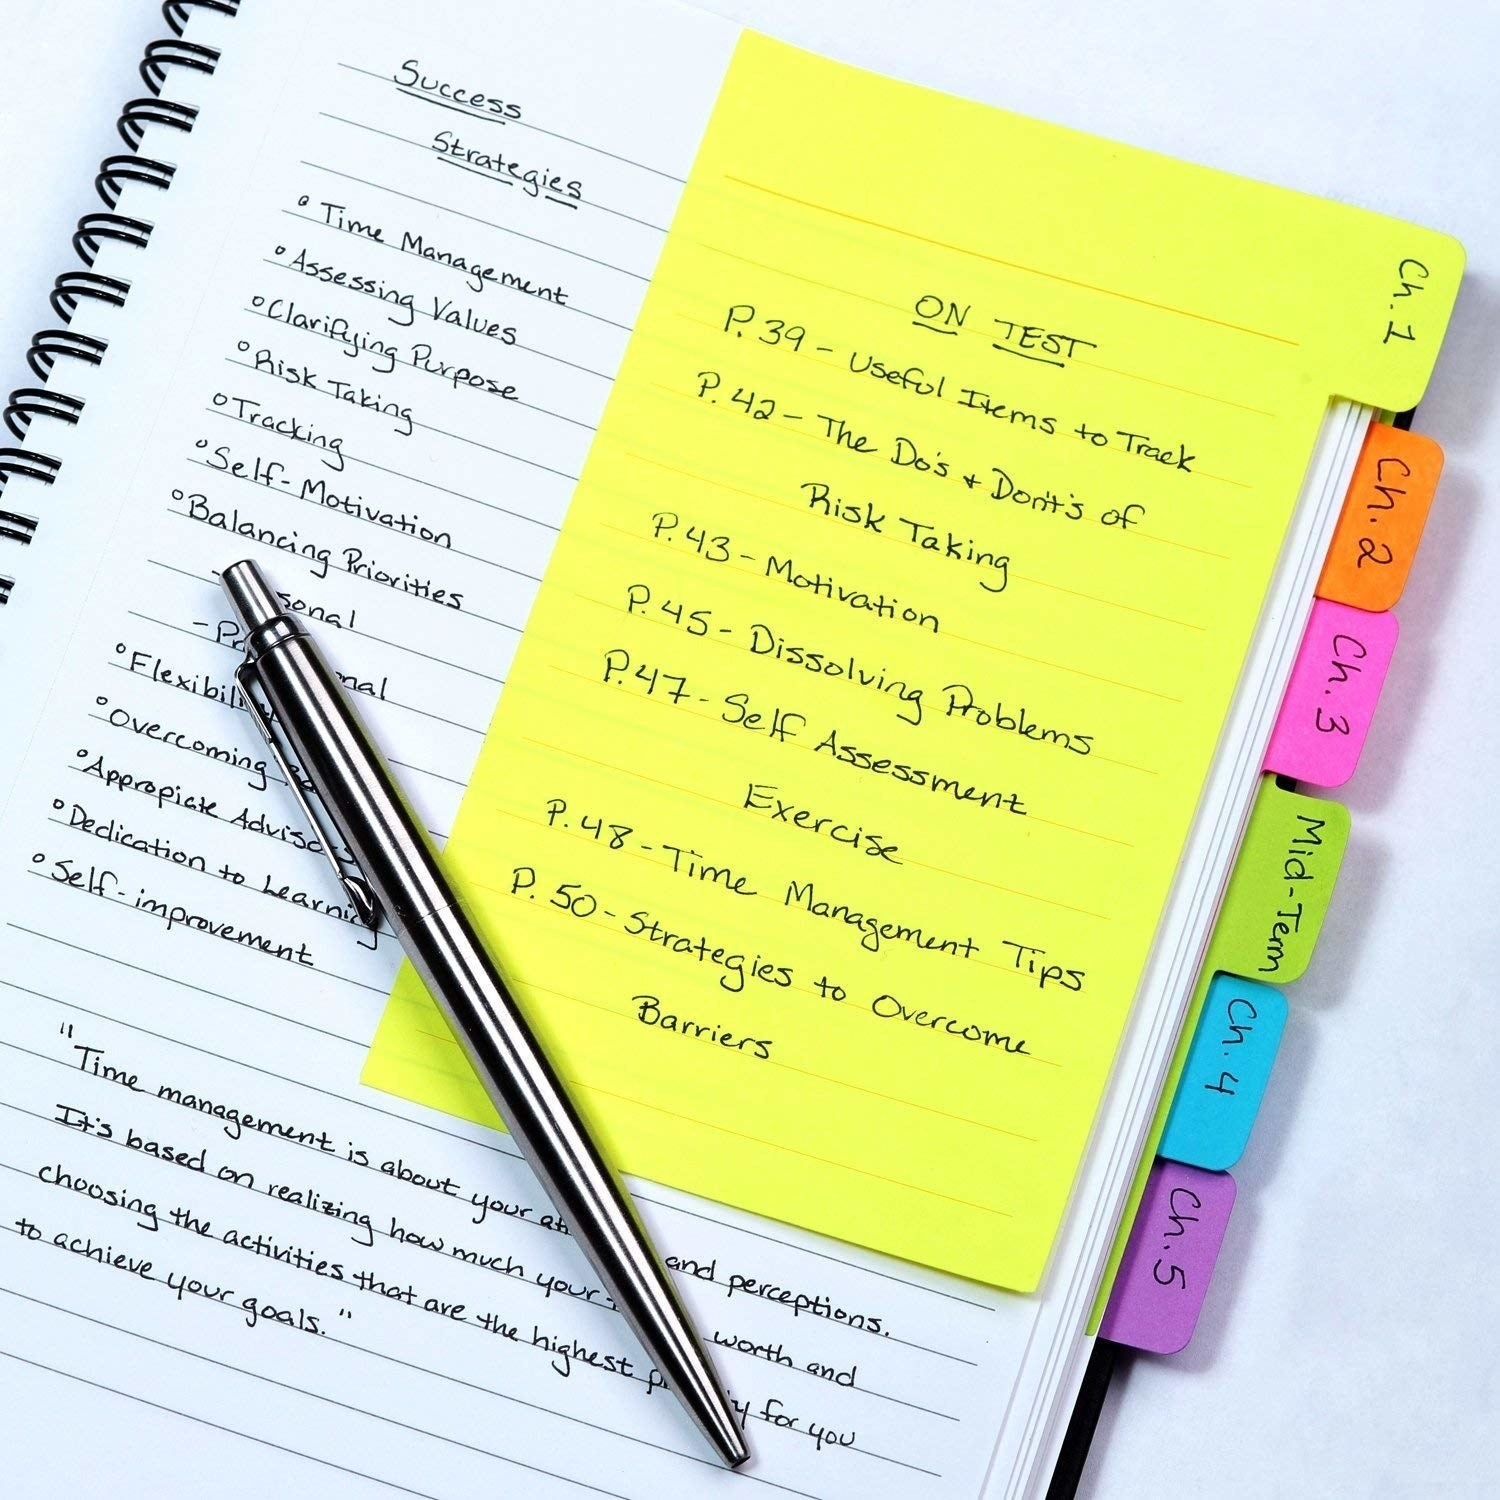 A product shot of the sticky notes in use